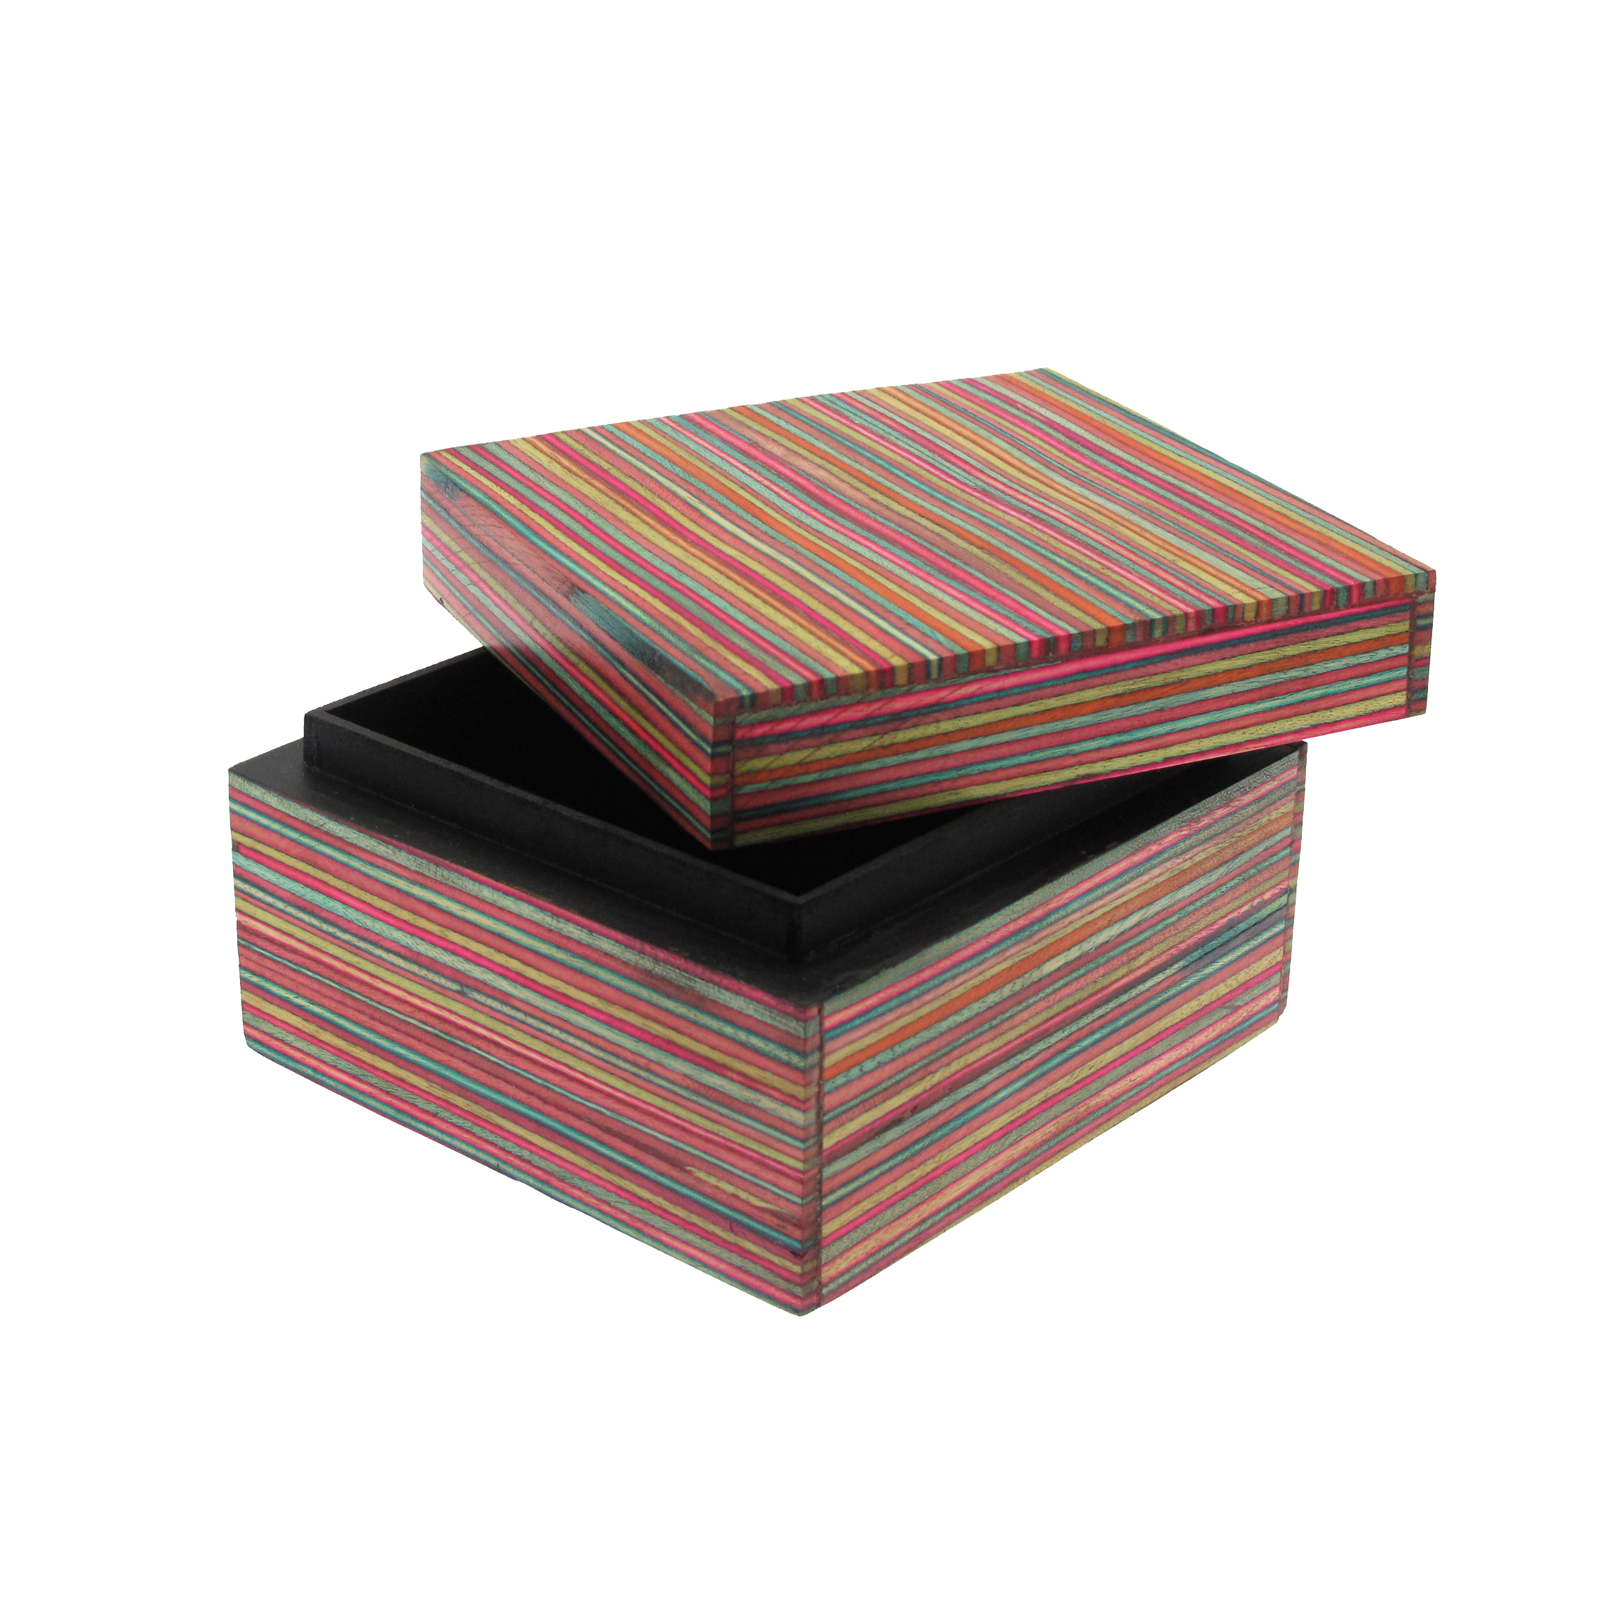 New! Dhari Stripy Range